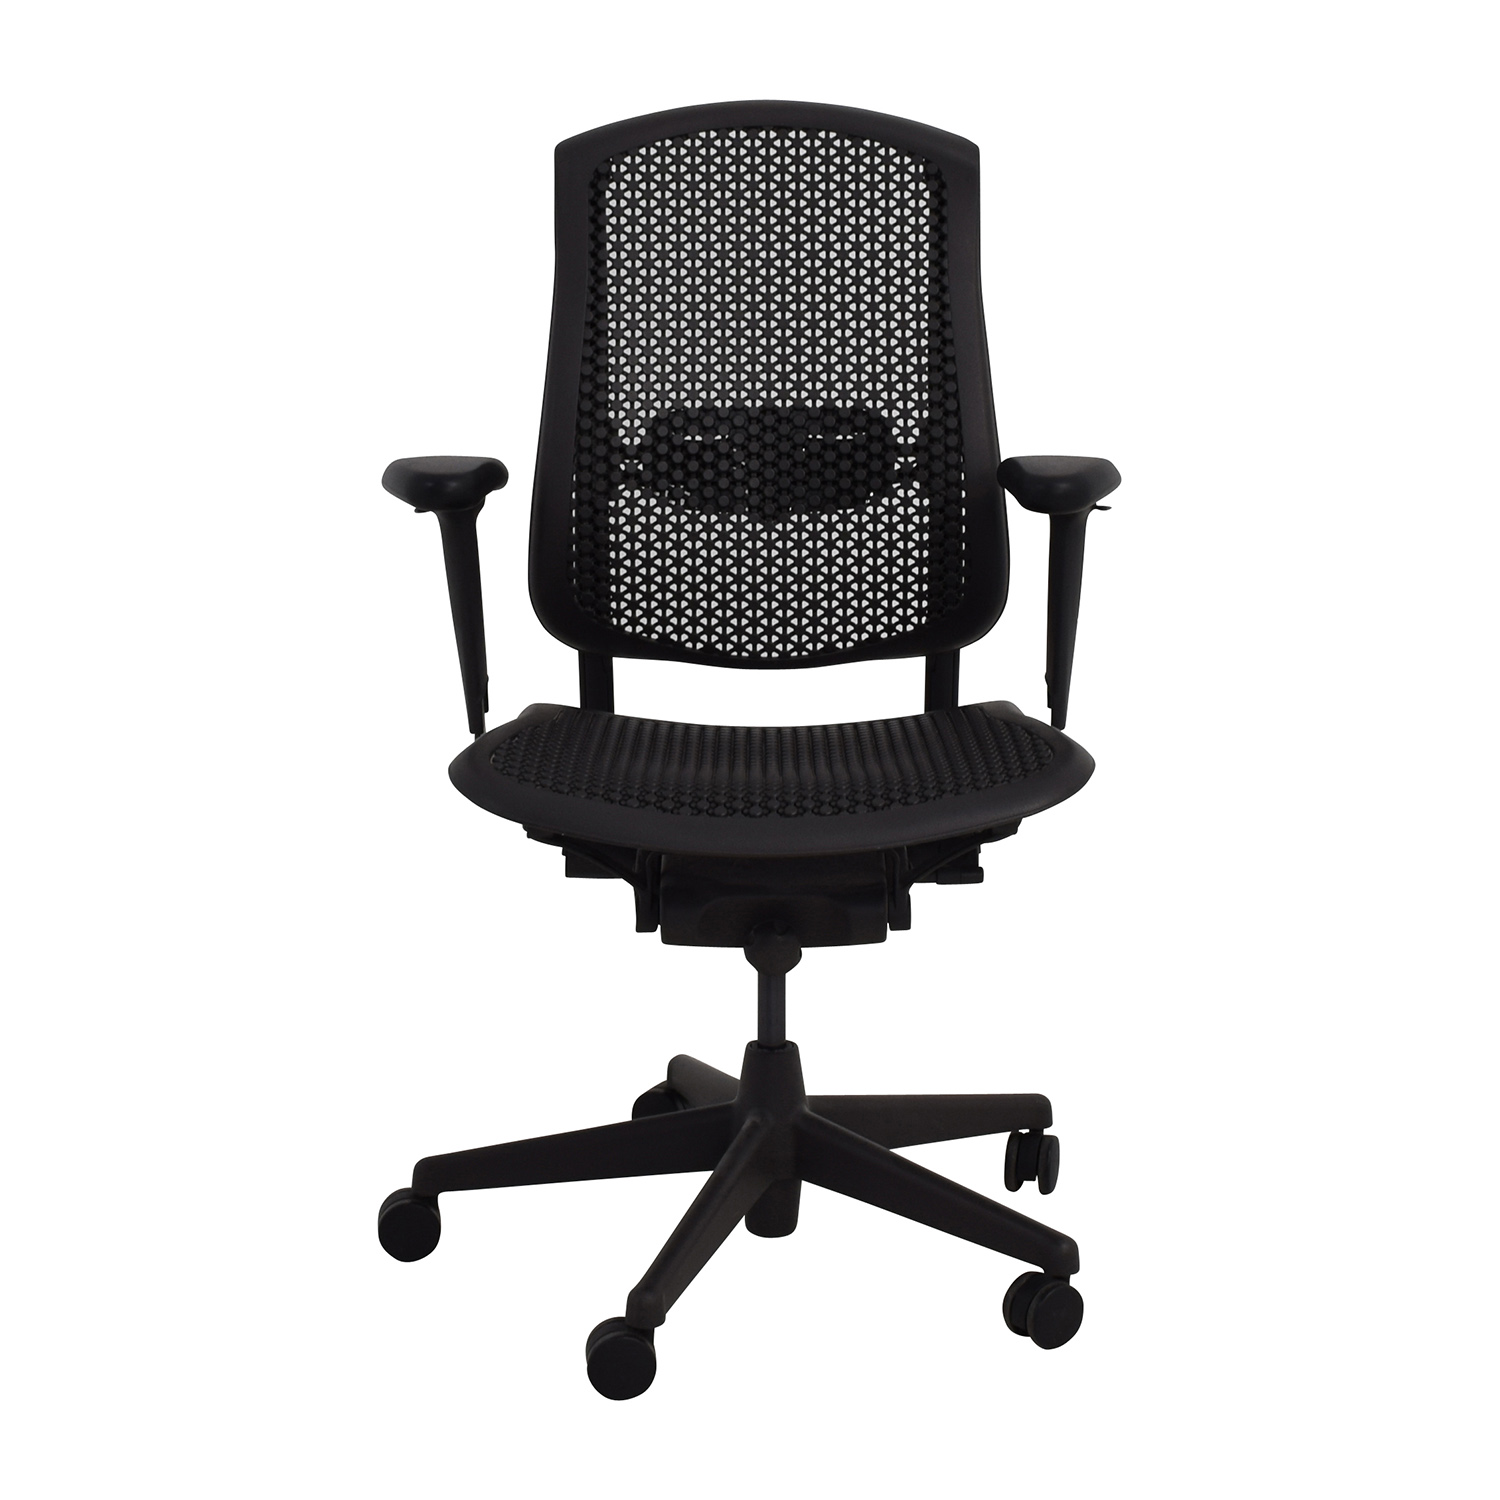 Herman Miller Herman Miller Biomorph Ergonomic Black Desk Chair coupon